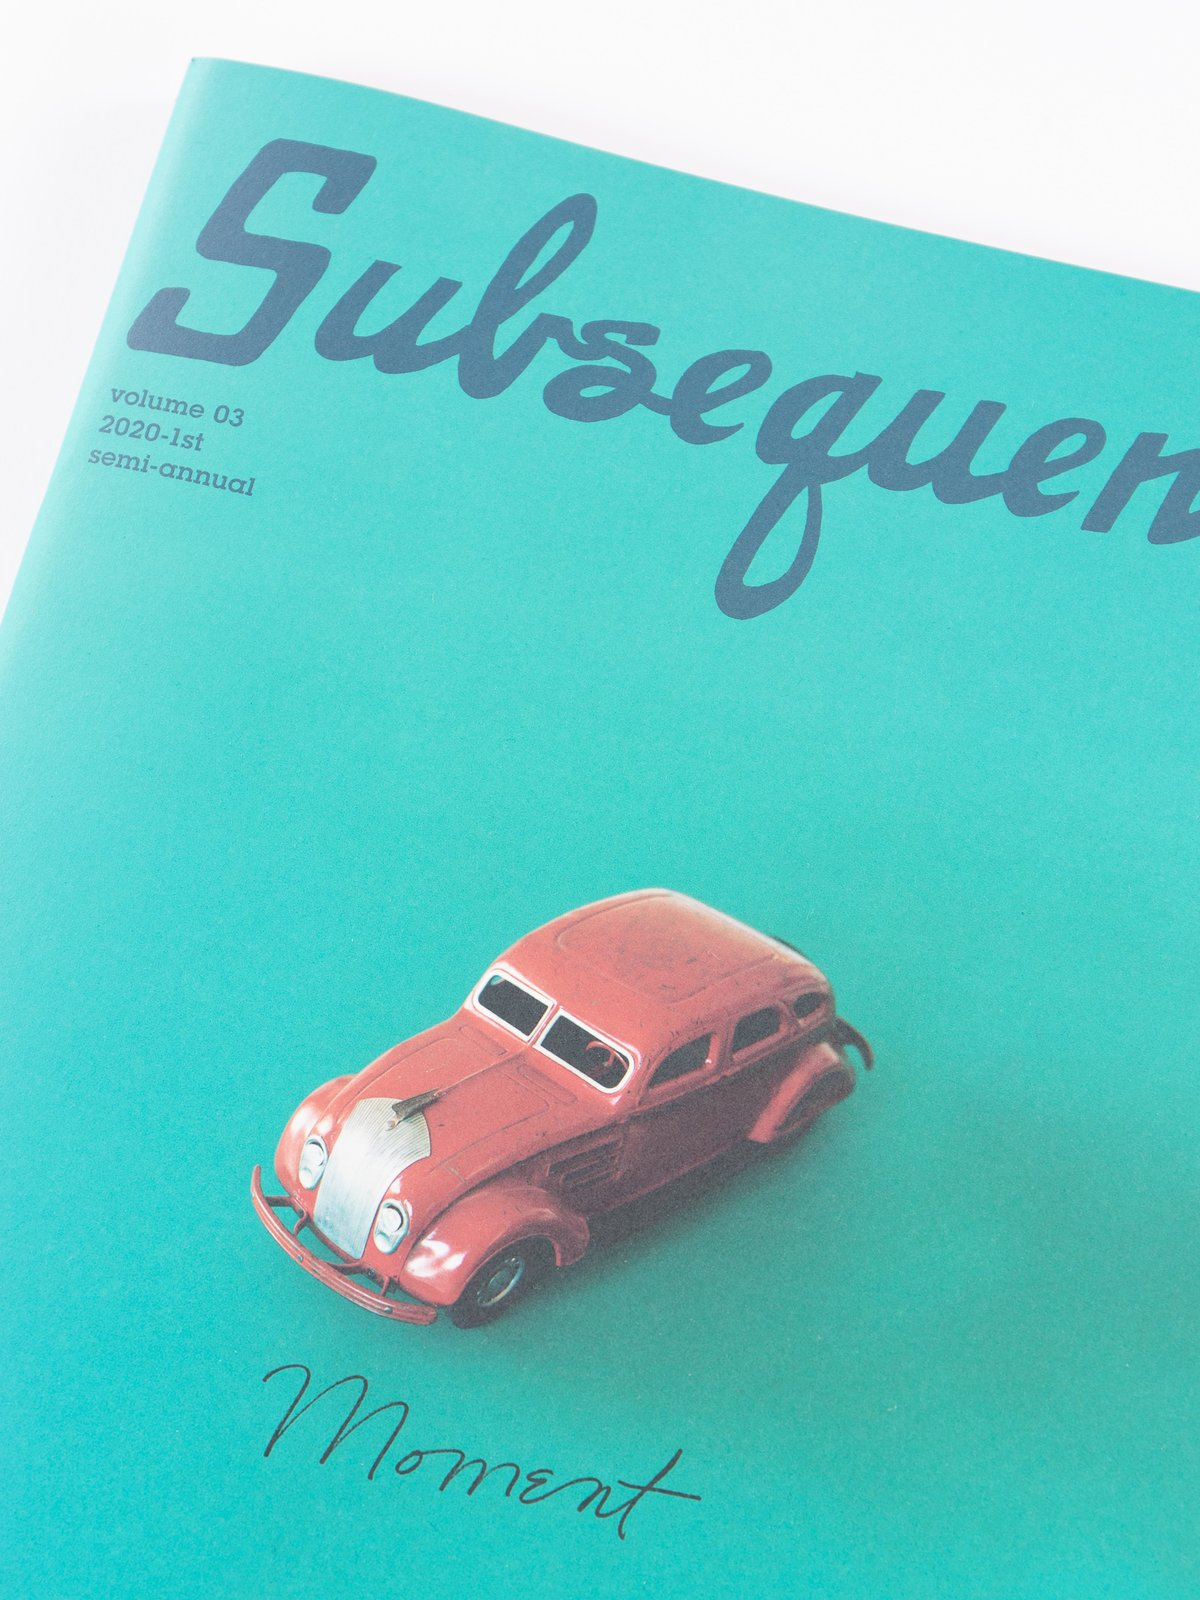 Subsequence Volume 03 - Image 2